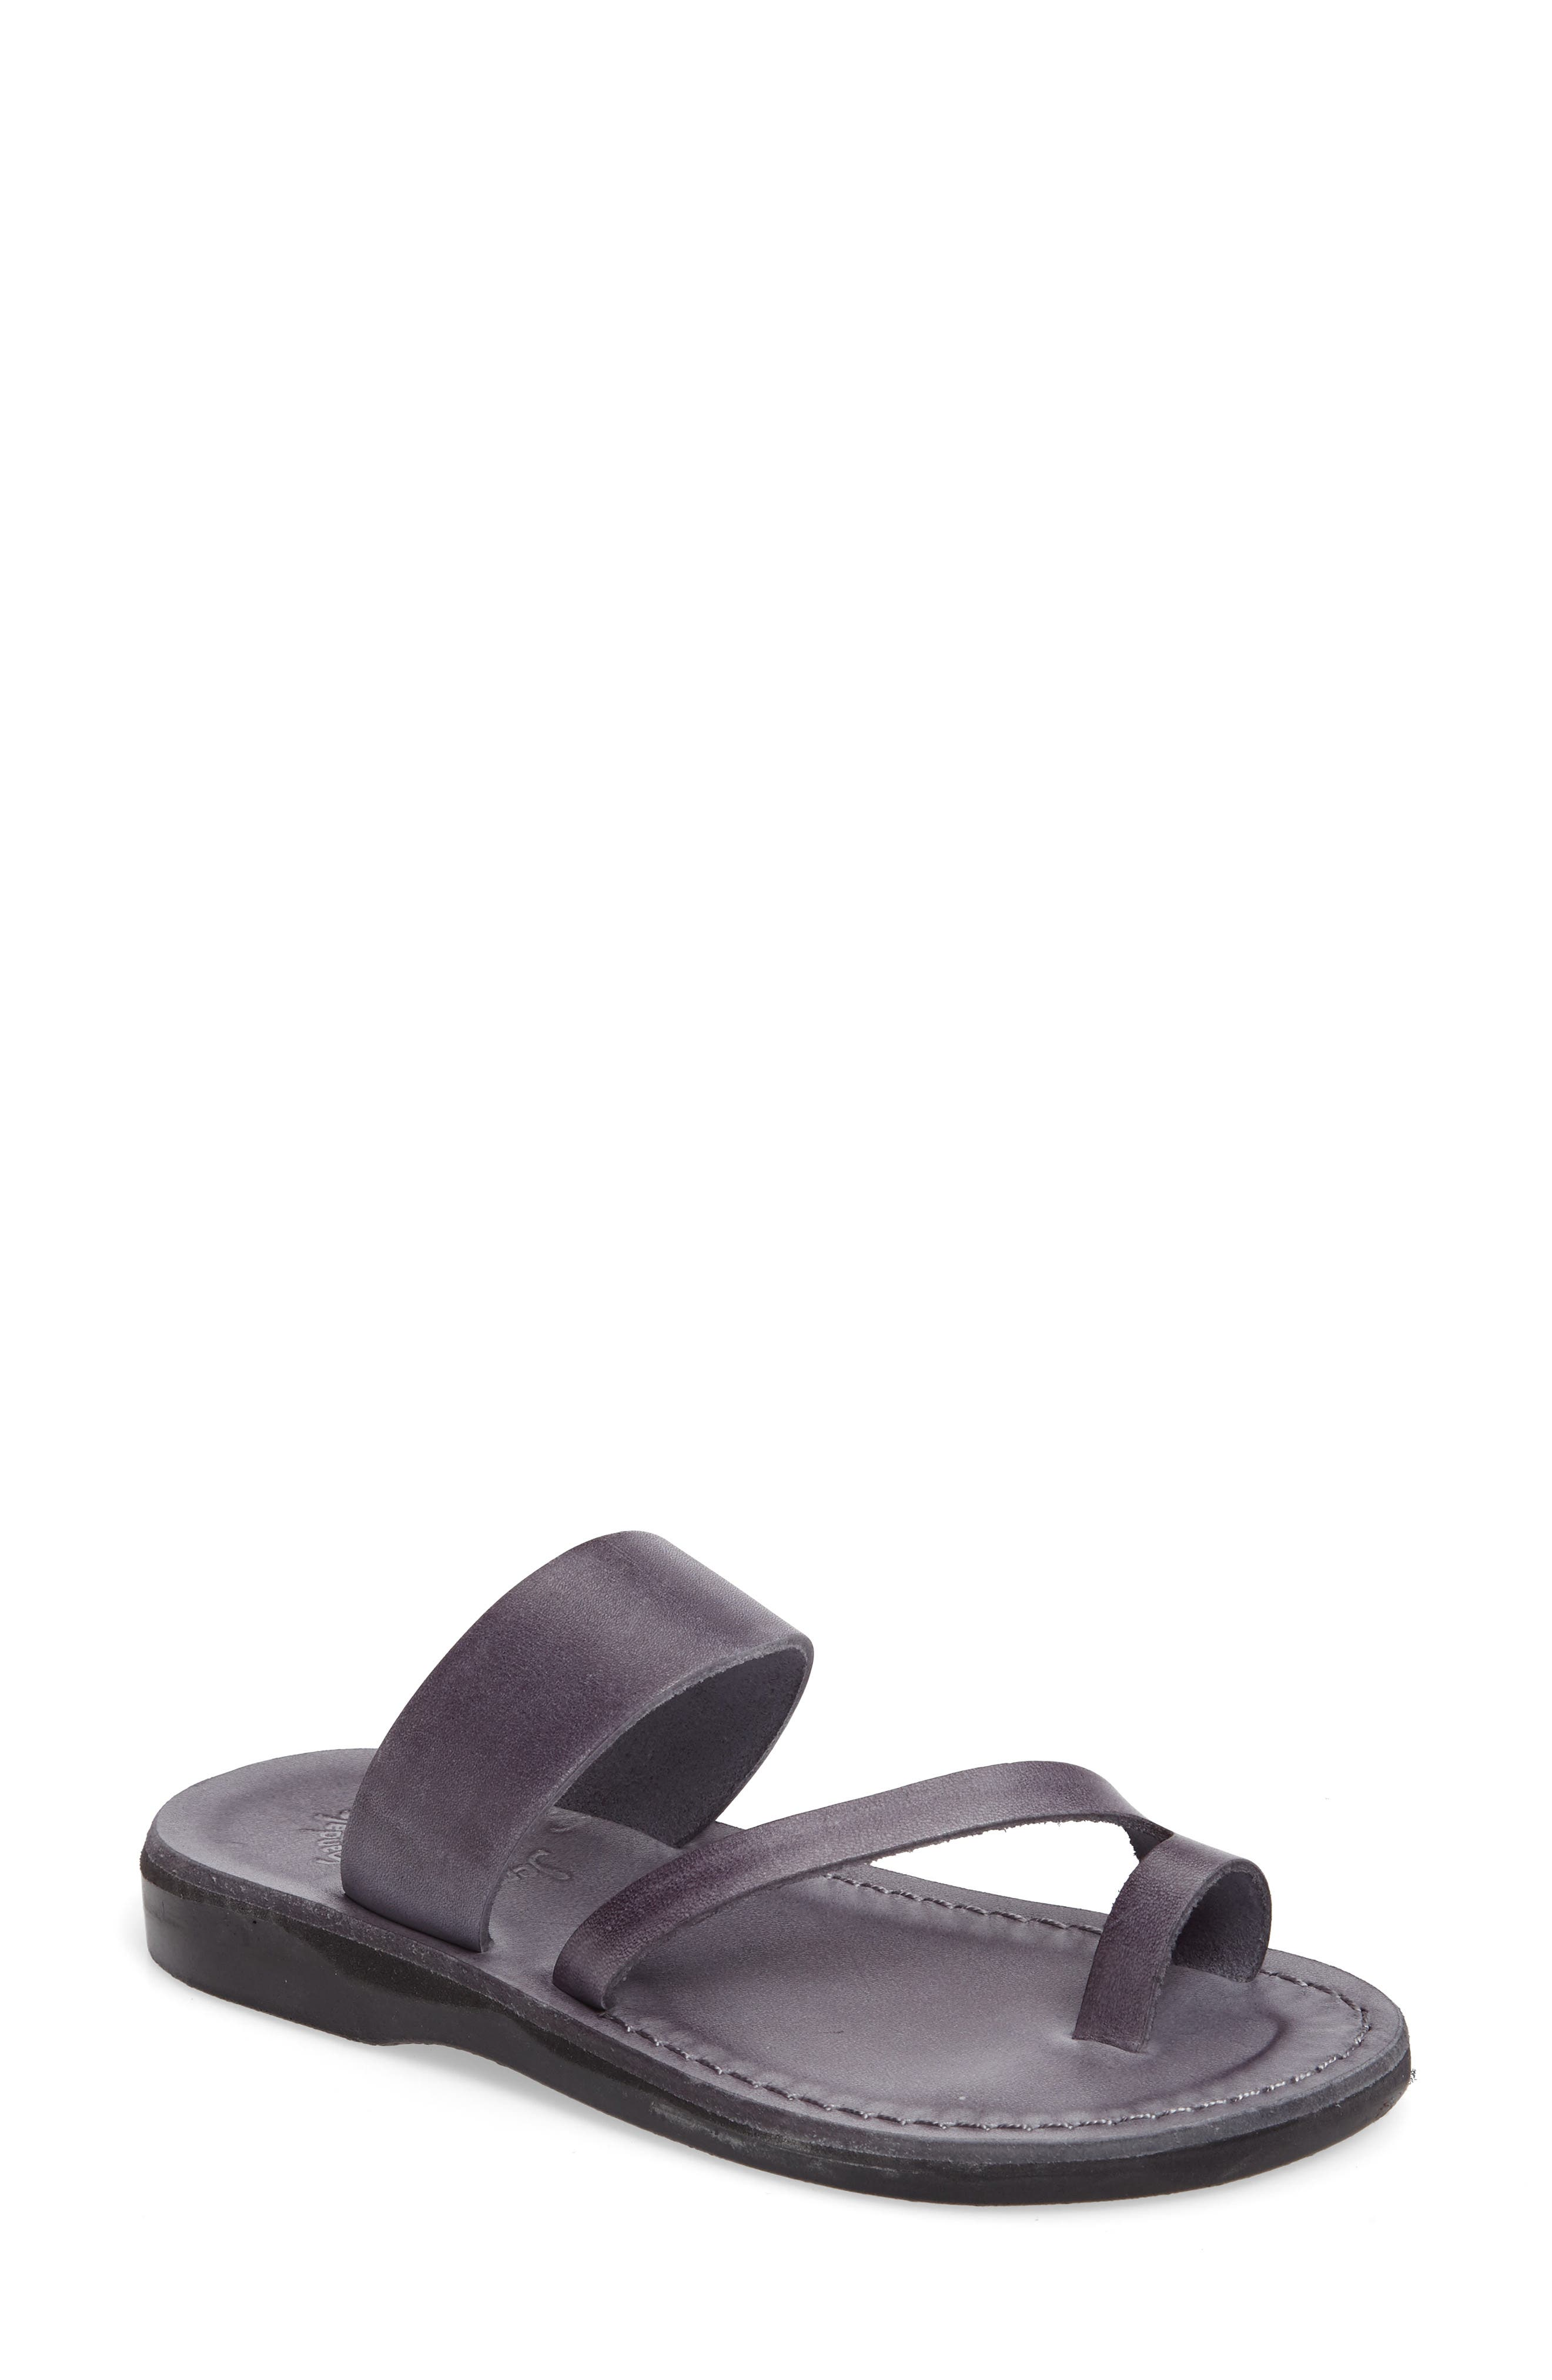 'Zohar' Leather Sandal,                             Main thumbnail 3, color,